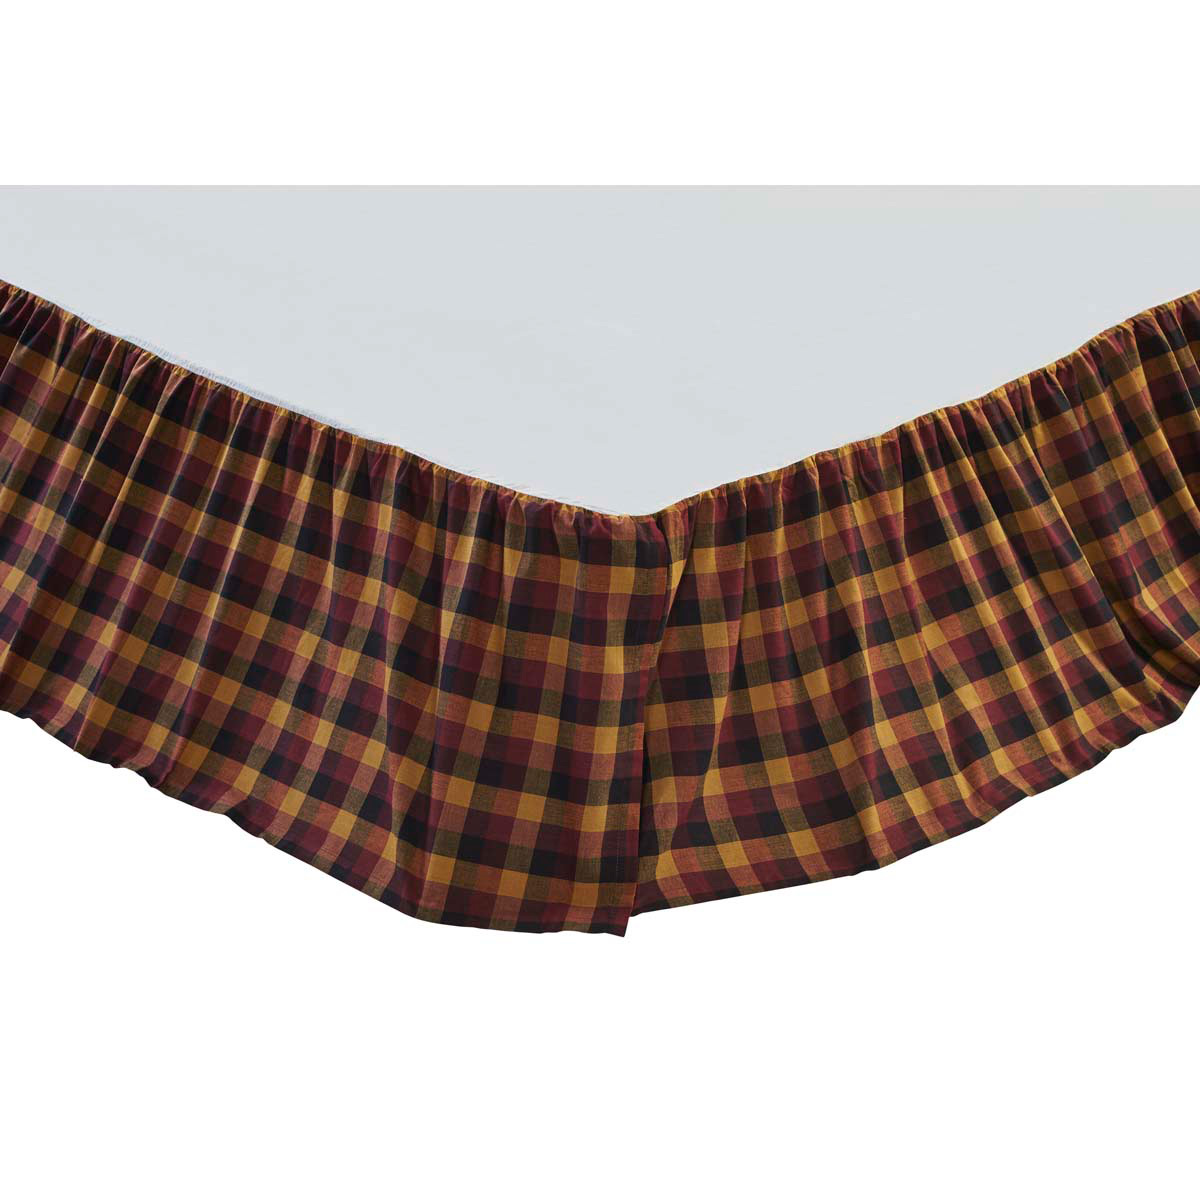 Primitive Check Bed Skirt, by VHC Brands.